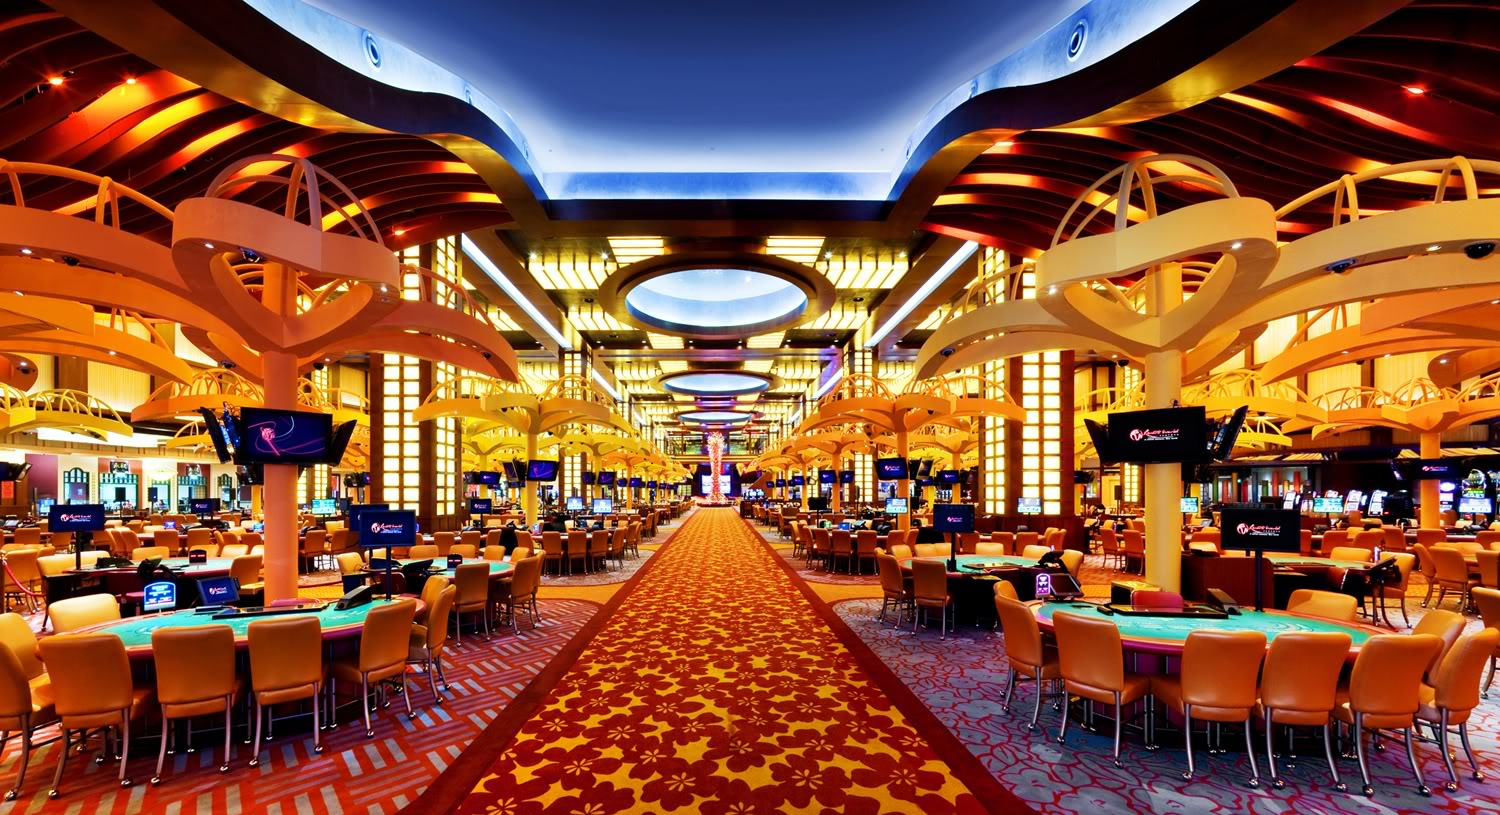 casino-courtesy-of-midwestcasinotours-com